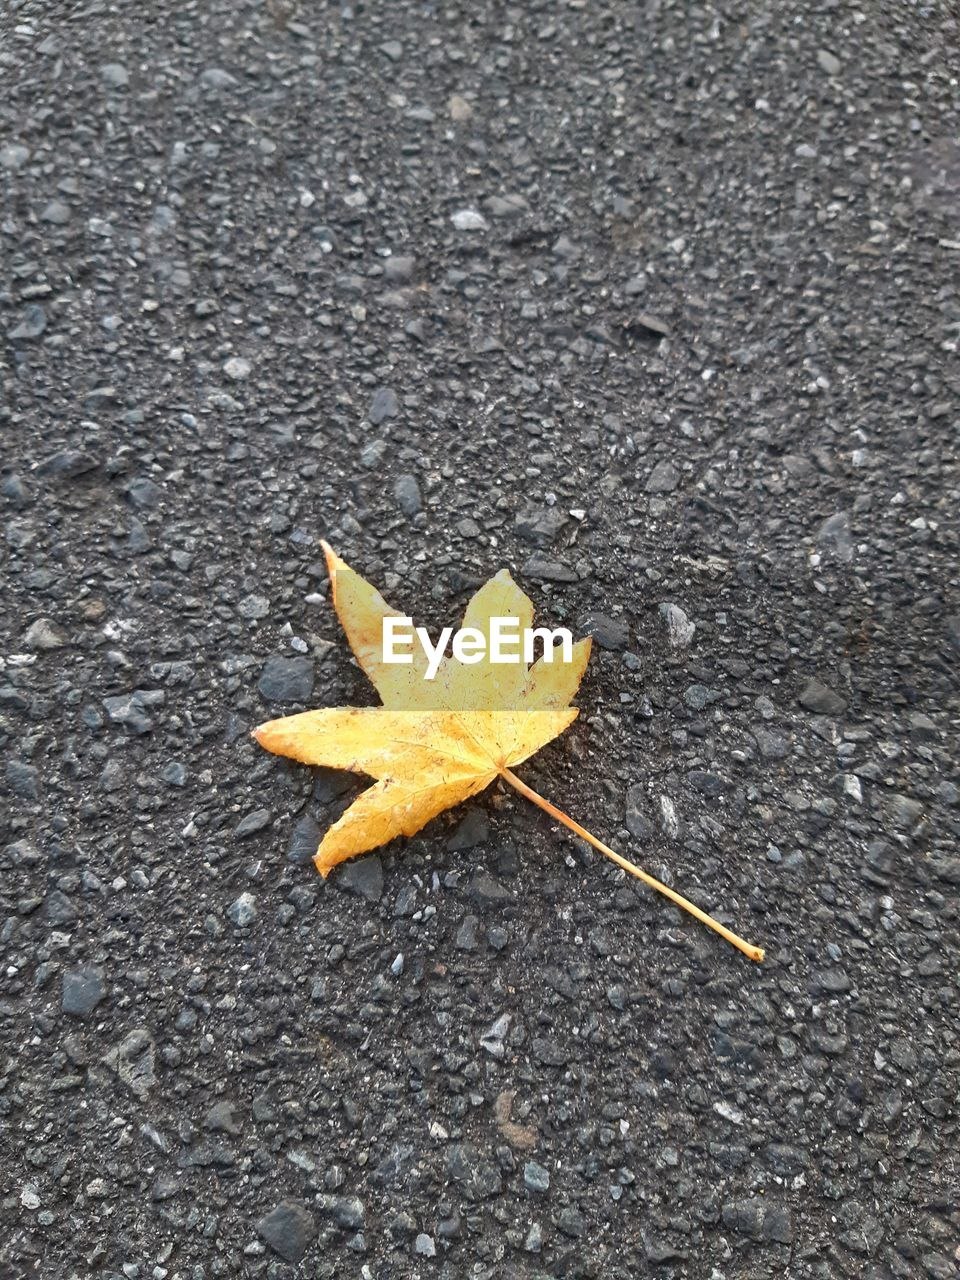 nature, leaf, plant part, road, close-up, no people, day, change, high angle view, autumn, directly above, star shape, falling, maple leaf, outdoors, textured, asphalt, yellow, dry, shape, starfish, natural condition